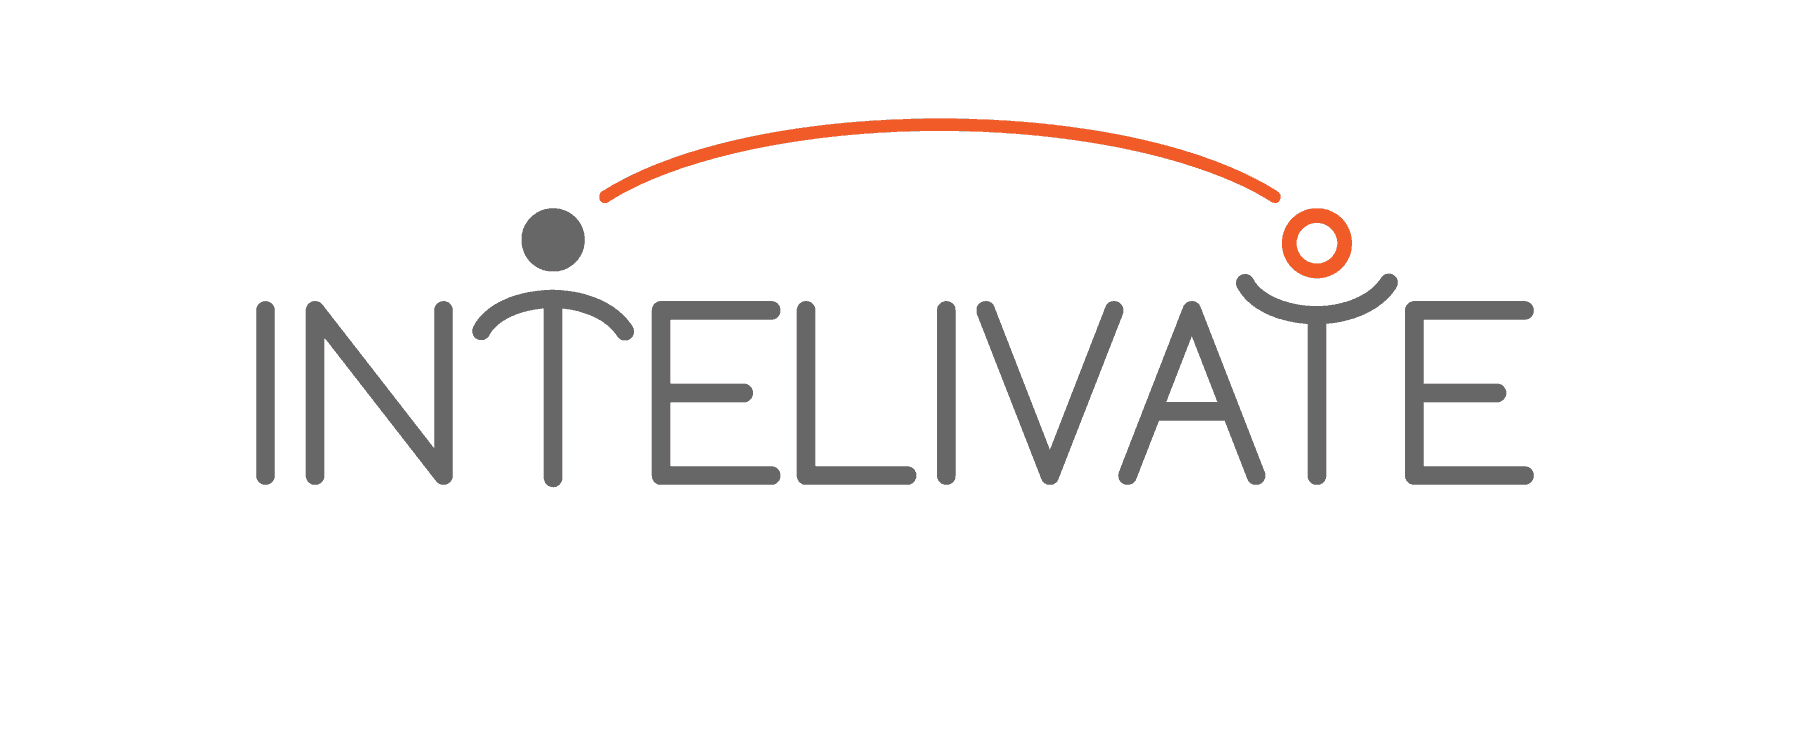 Intelivate solid logo